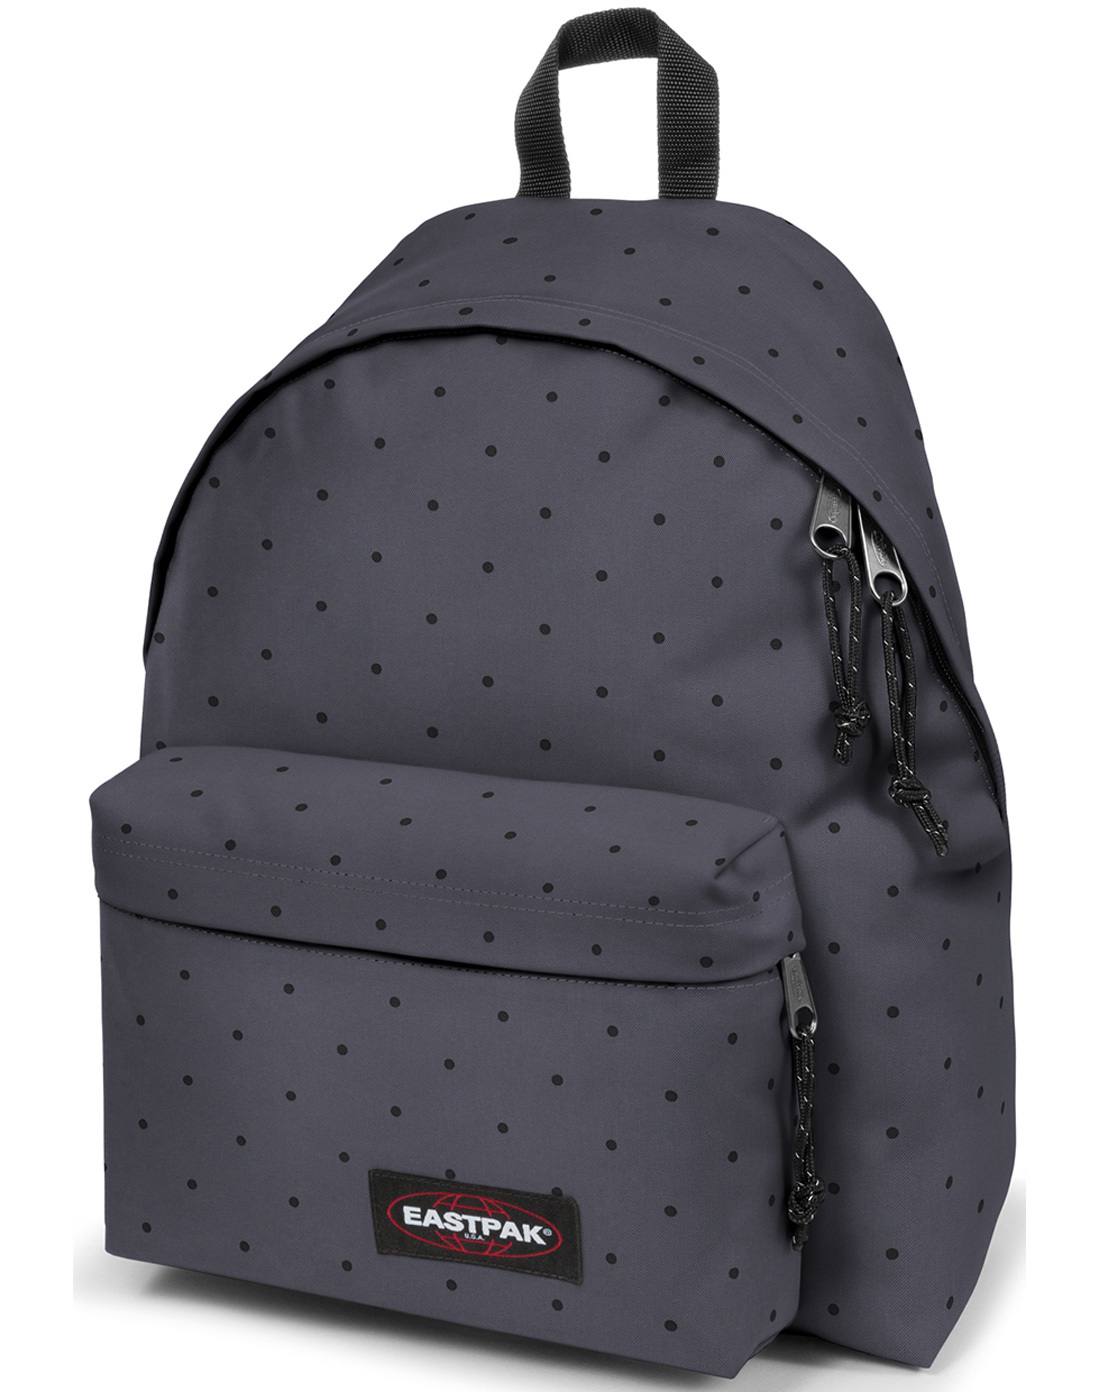 Padded Pak'r EASTPAK Retro Backpack -  Dot Grey